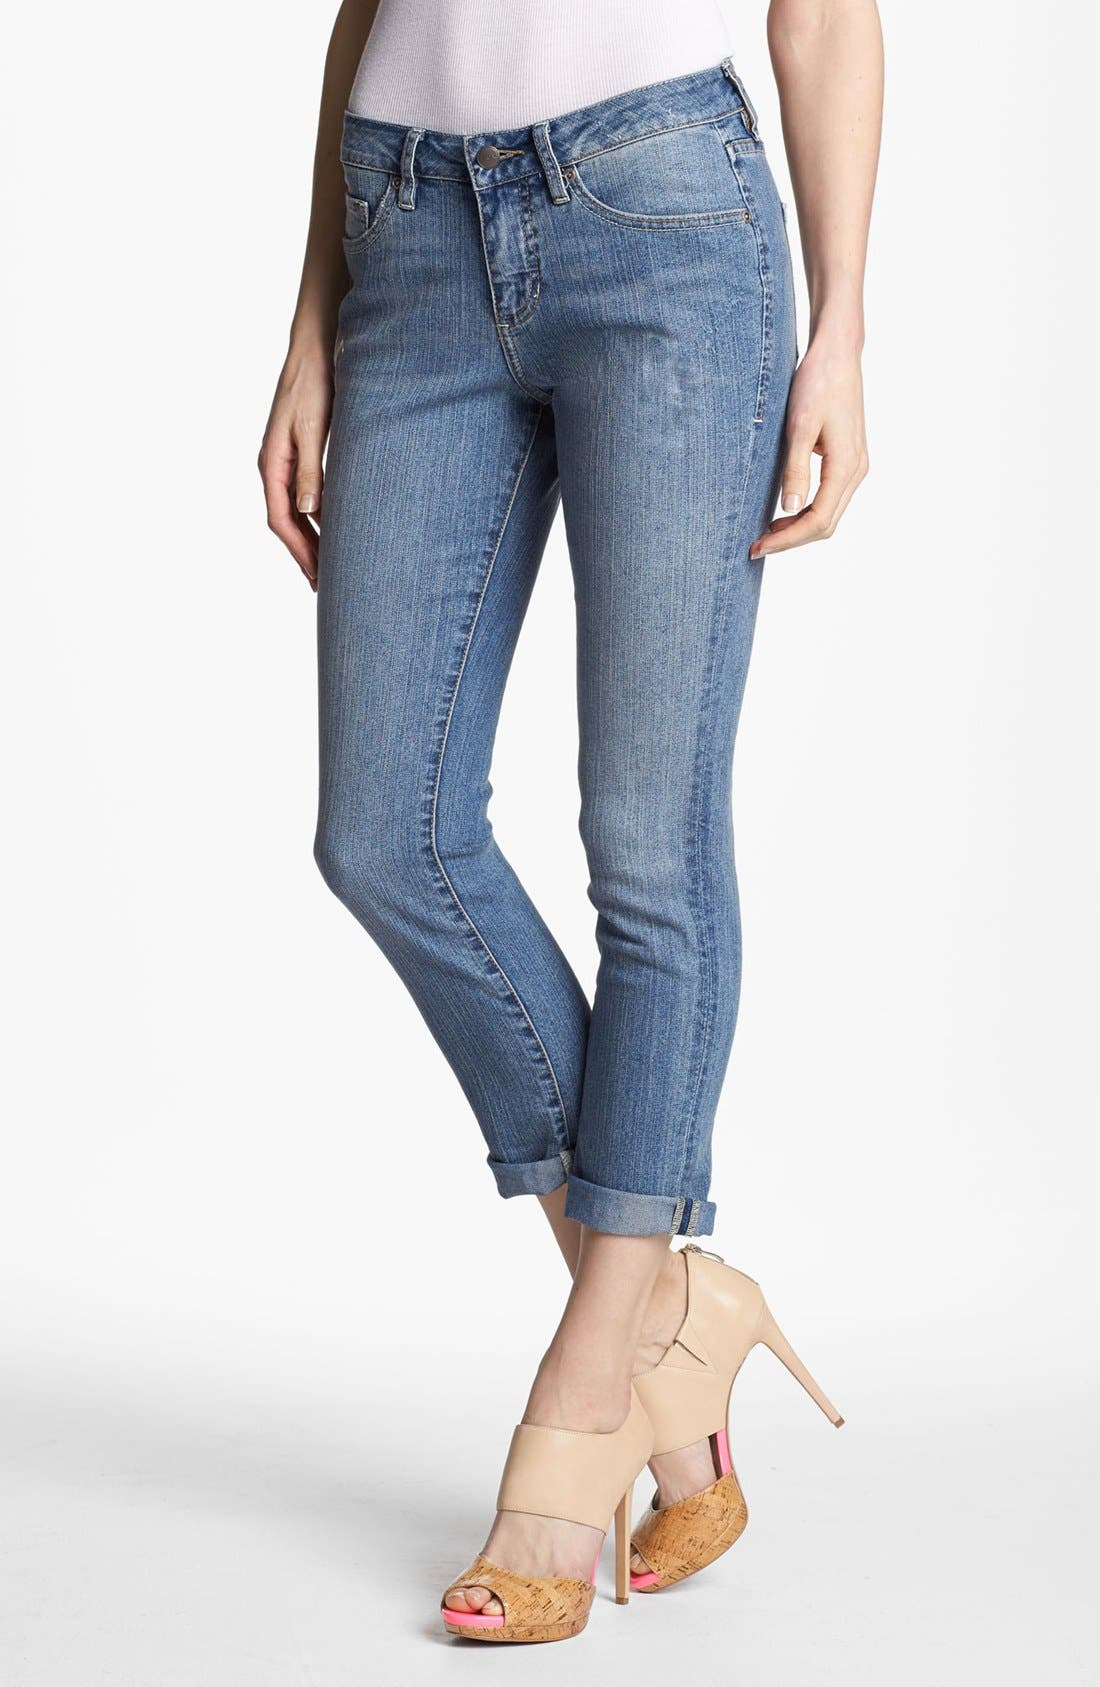 Alternate Image 1 Selected - Jag Jeans 'Tommy' Skinny Crop Boyfriend Jeans (Classic Vintage) (Petite)